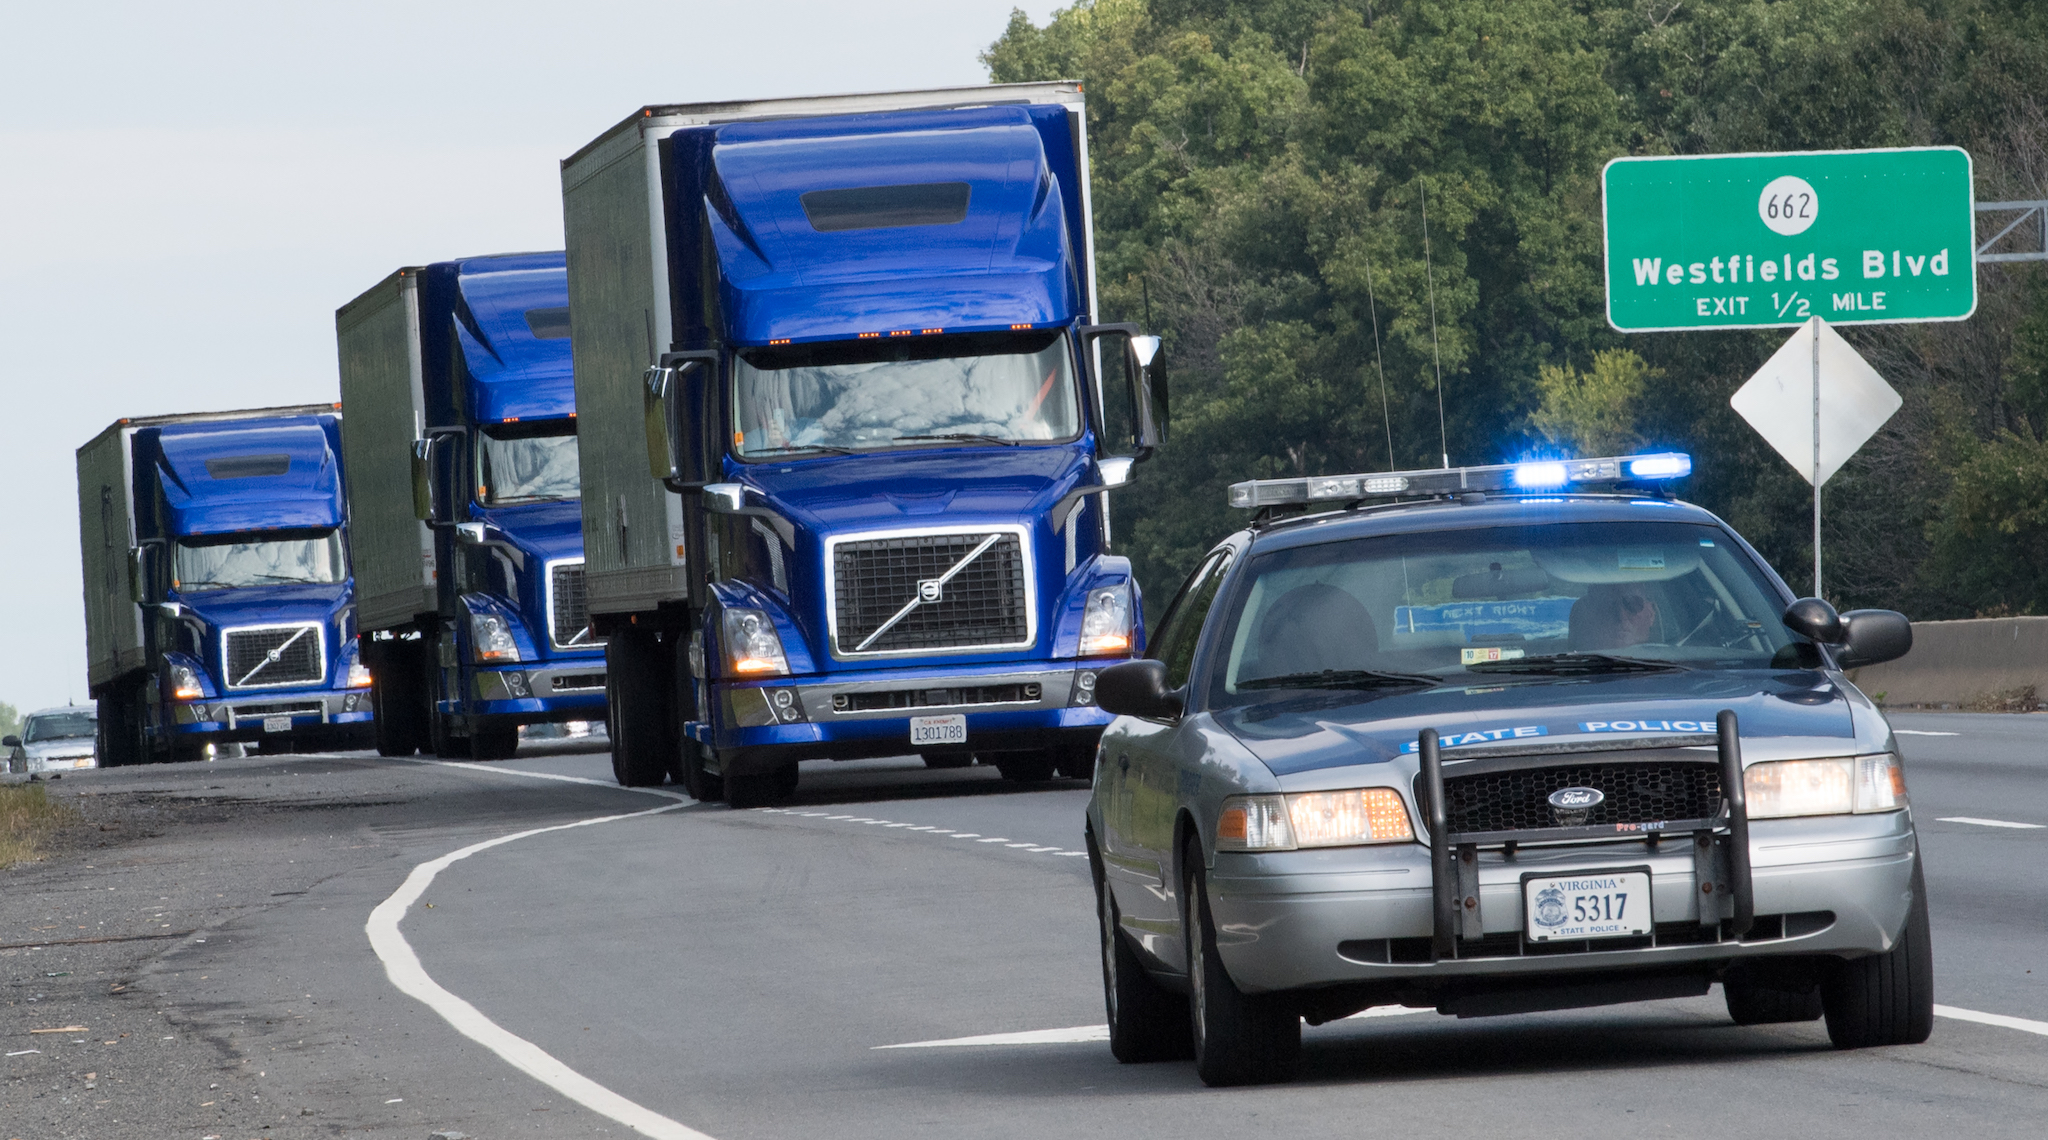 The US Federal Highway Administration conducts demonstrations of partially automated semi-truck platoons September 14, 2017, as three specially equipped Volvo semi-trucks cruise in Centreville, Virginia, with a Virginia State Trooper escort.